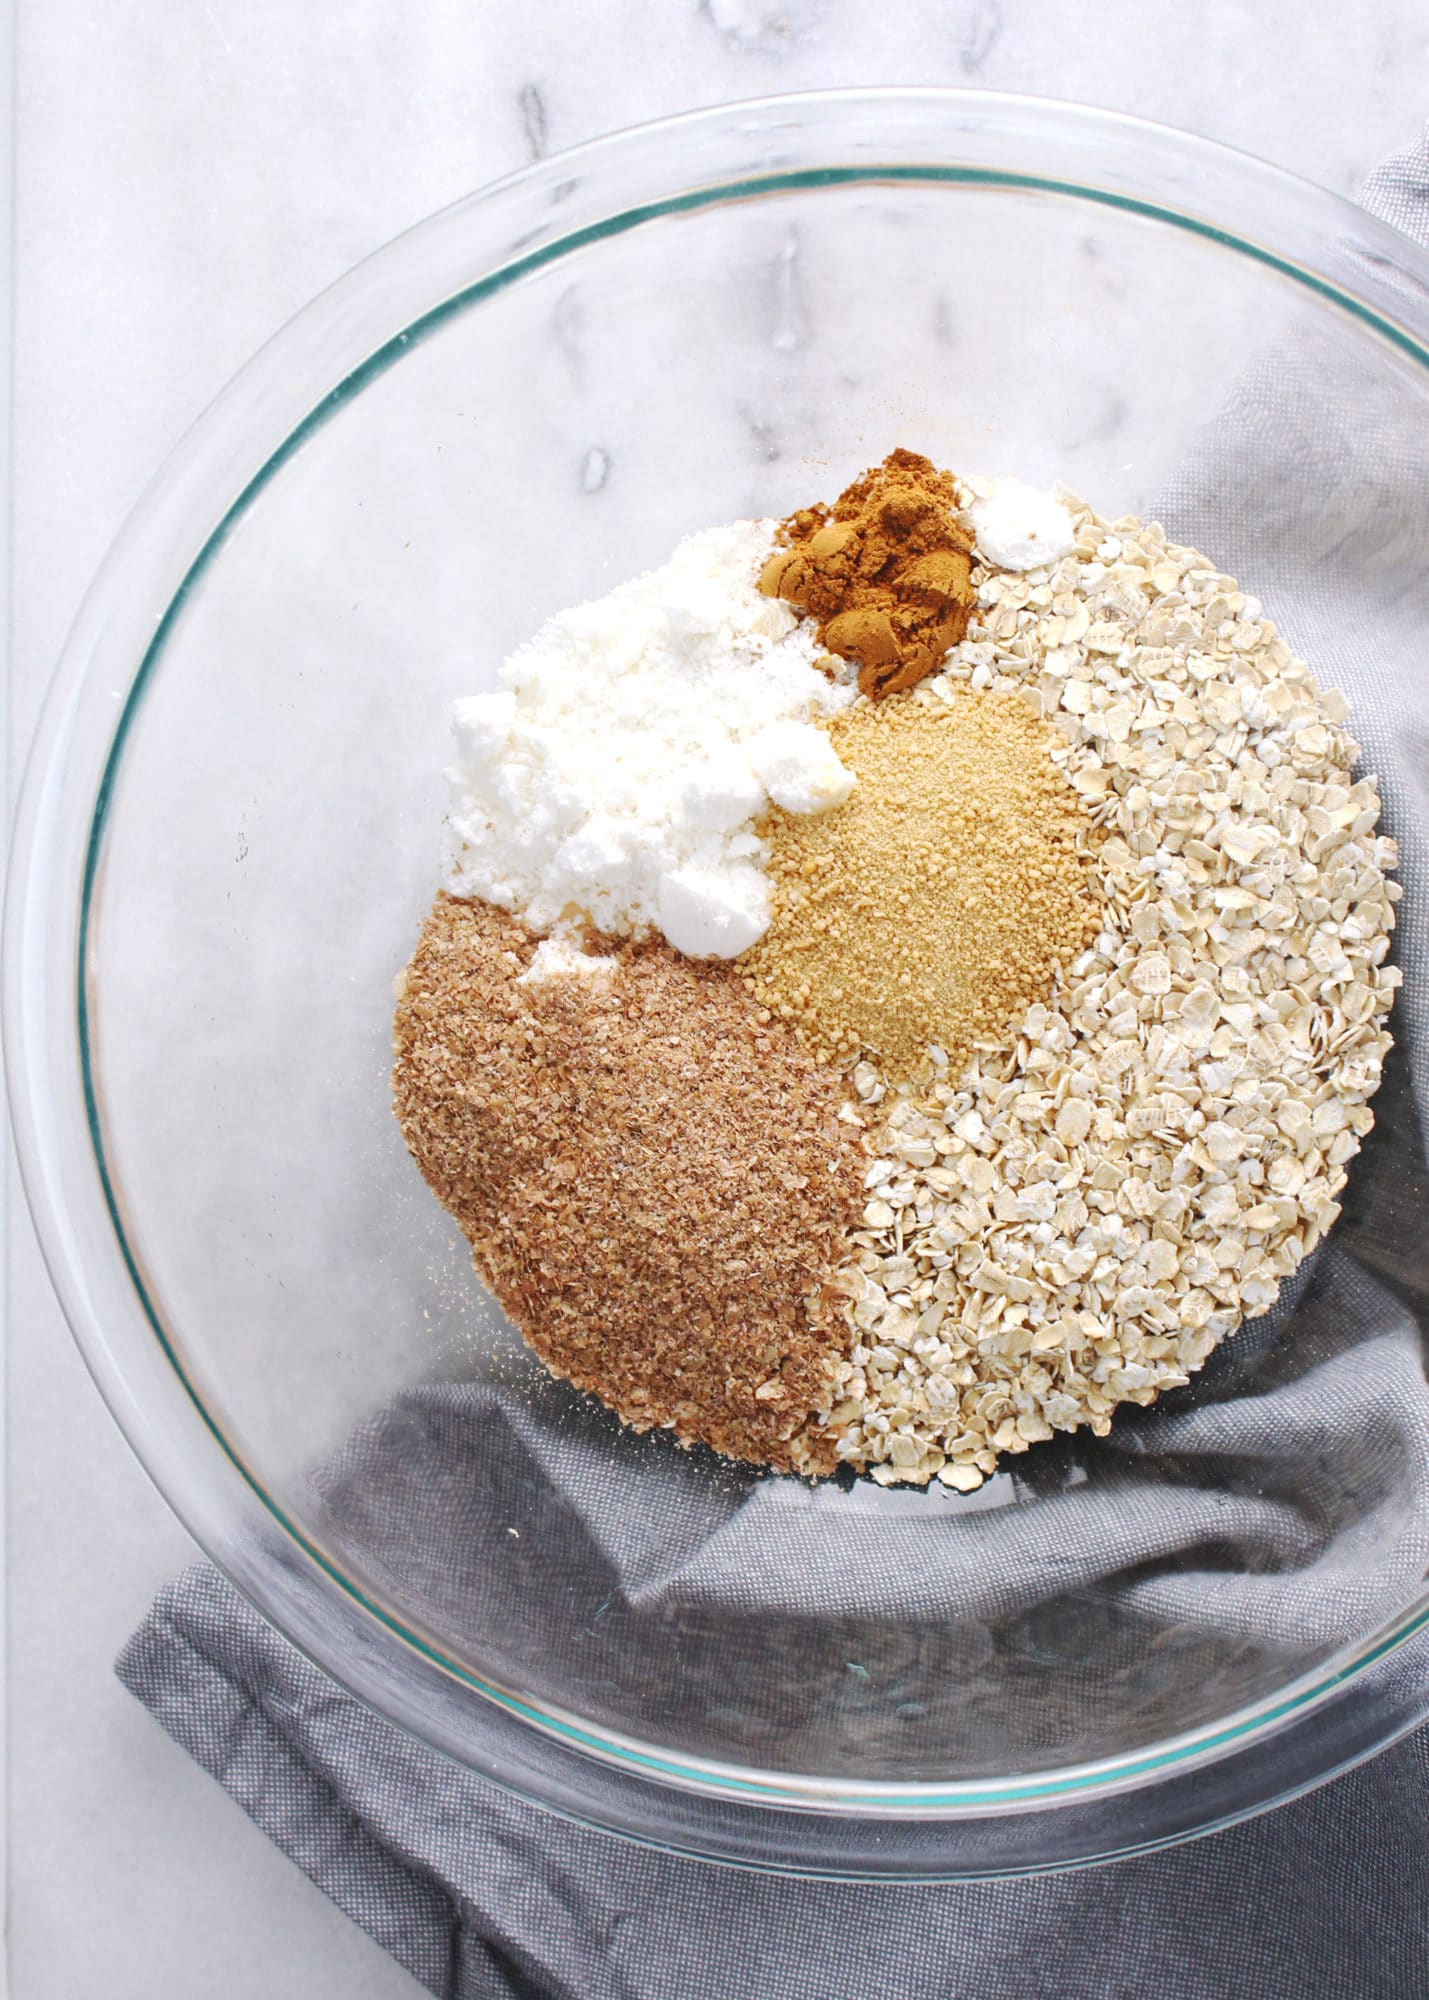 ingredients for making instant oatmeal packets in large glass bowl